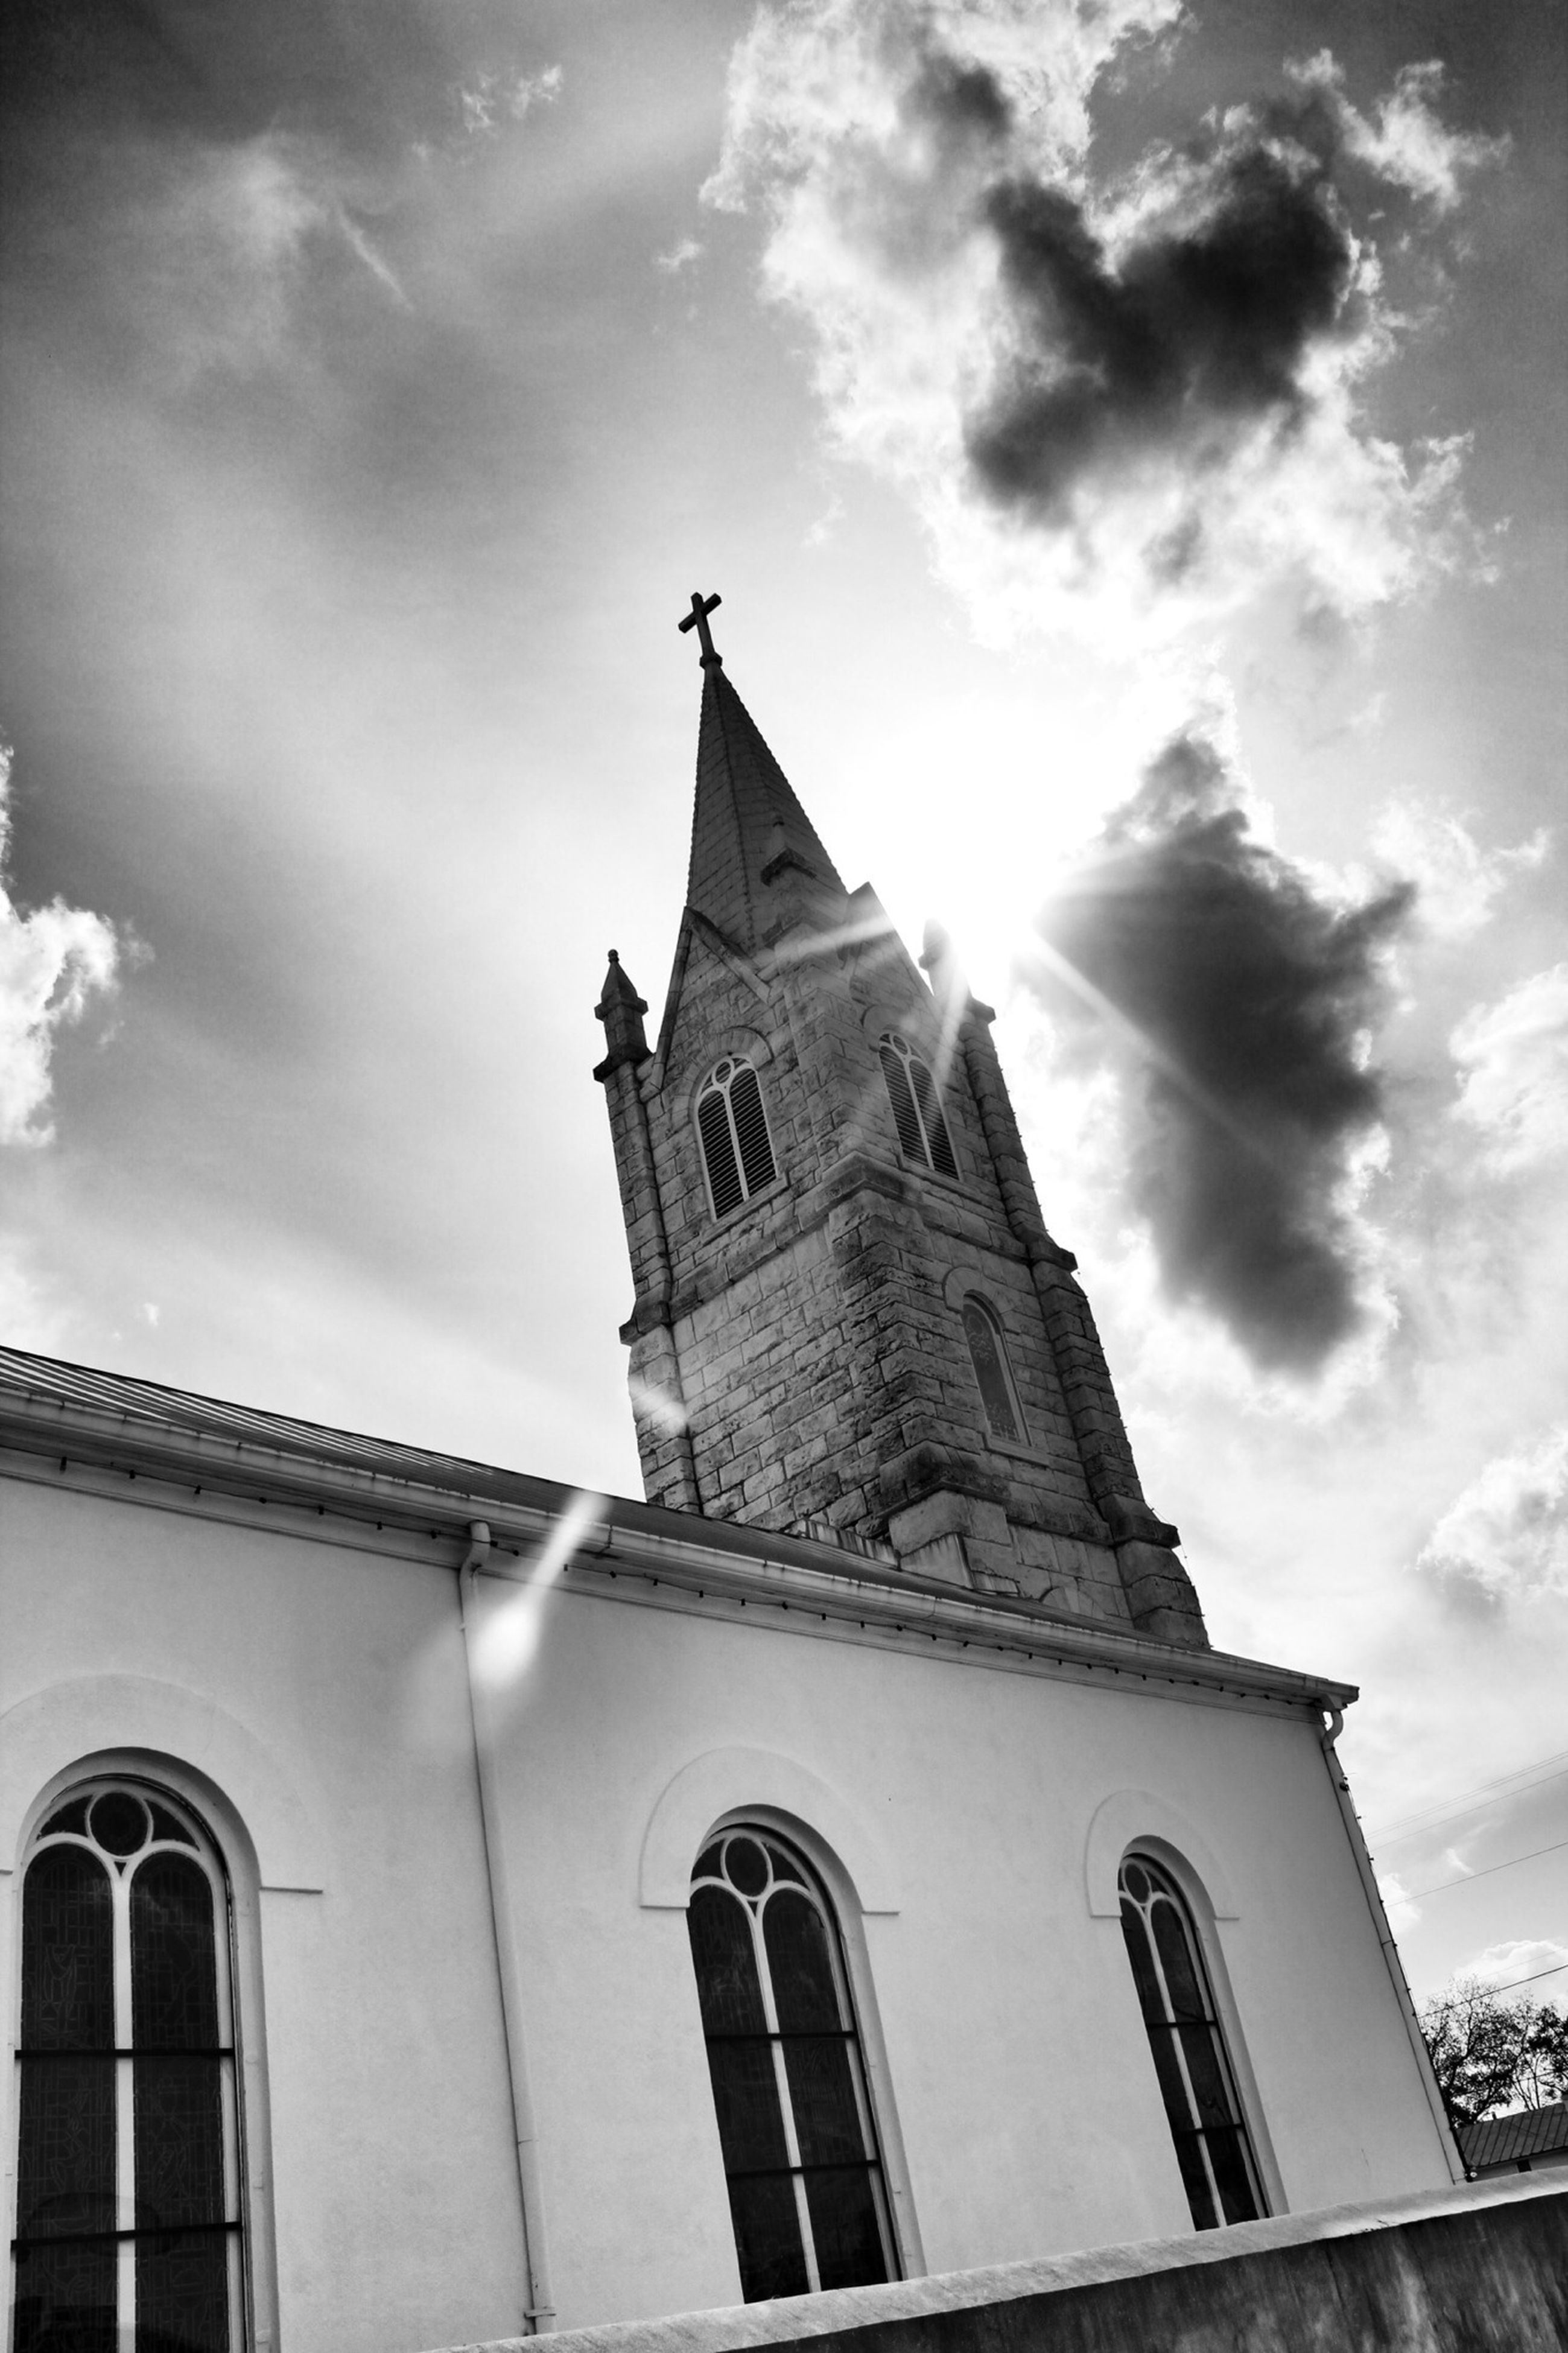 architecture, building exterior, built structure, low angle view, sky, cloud - sky, cloud, window, religion, cloudy, church, city, place of worship, tower, day, outdoors, high section, history, no people